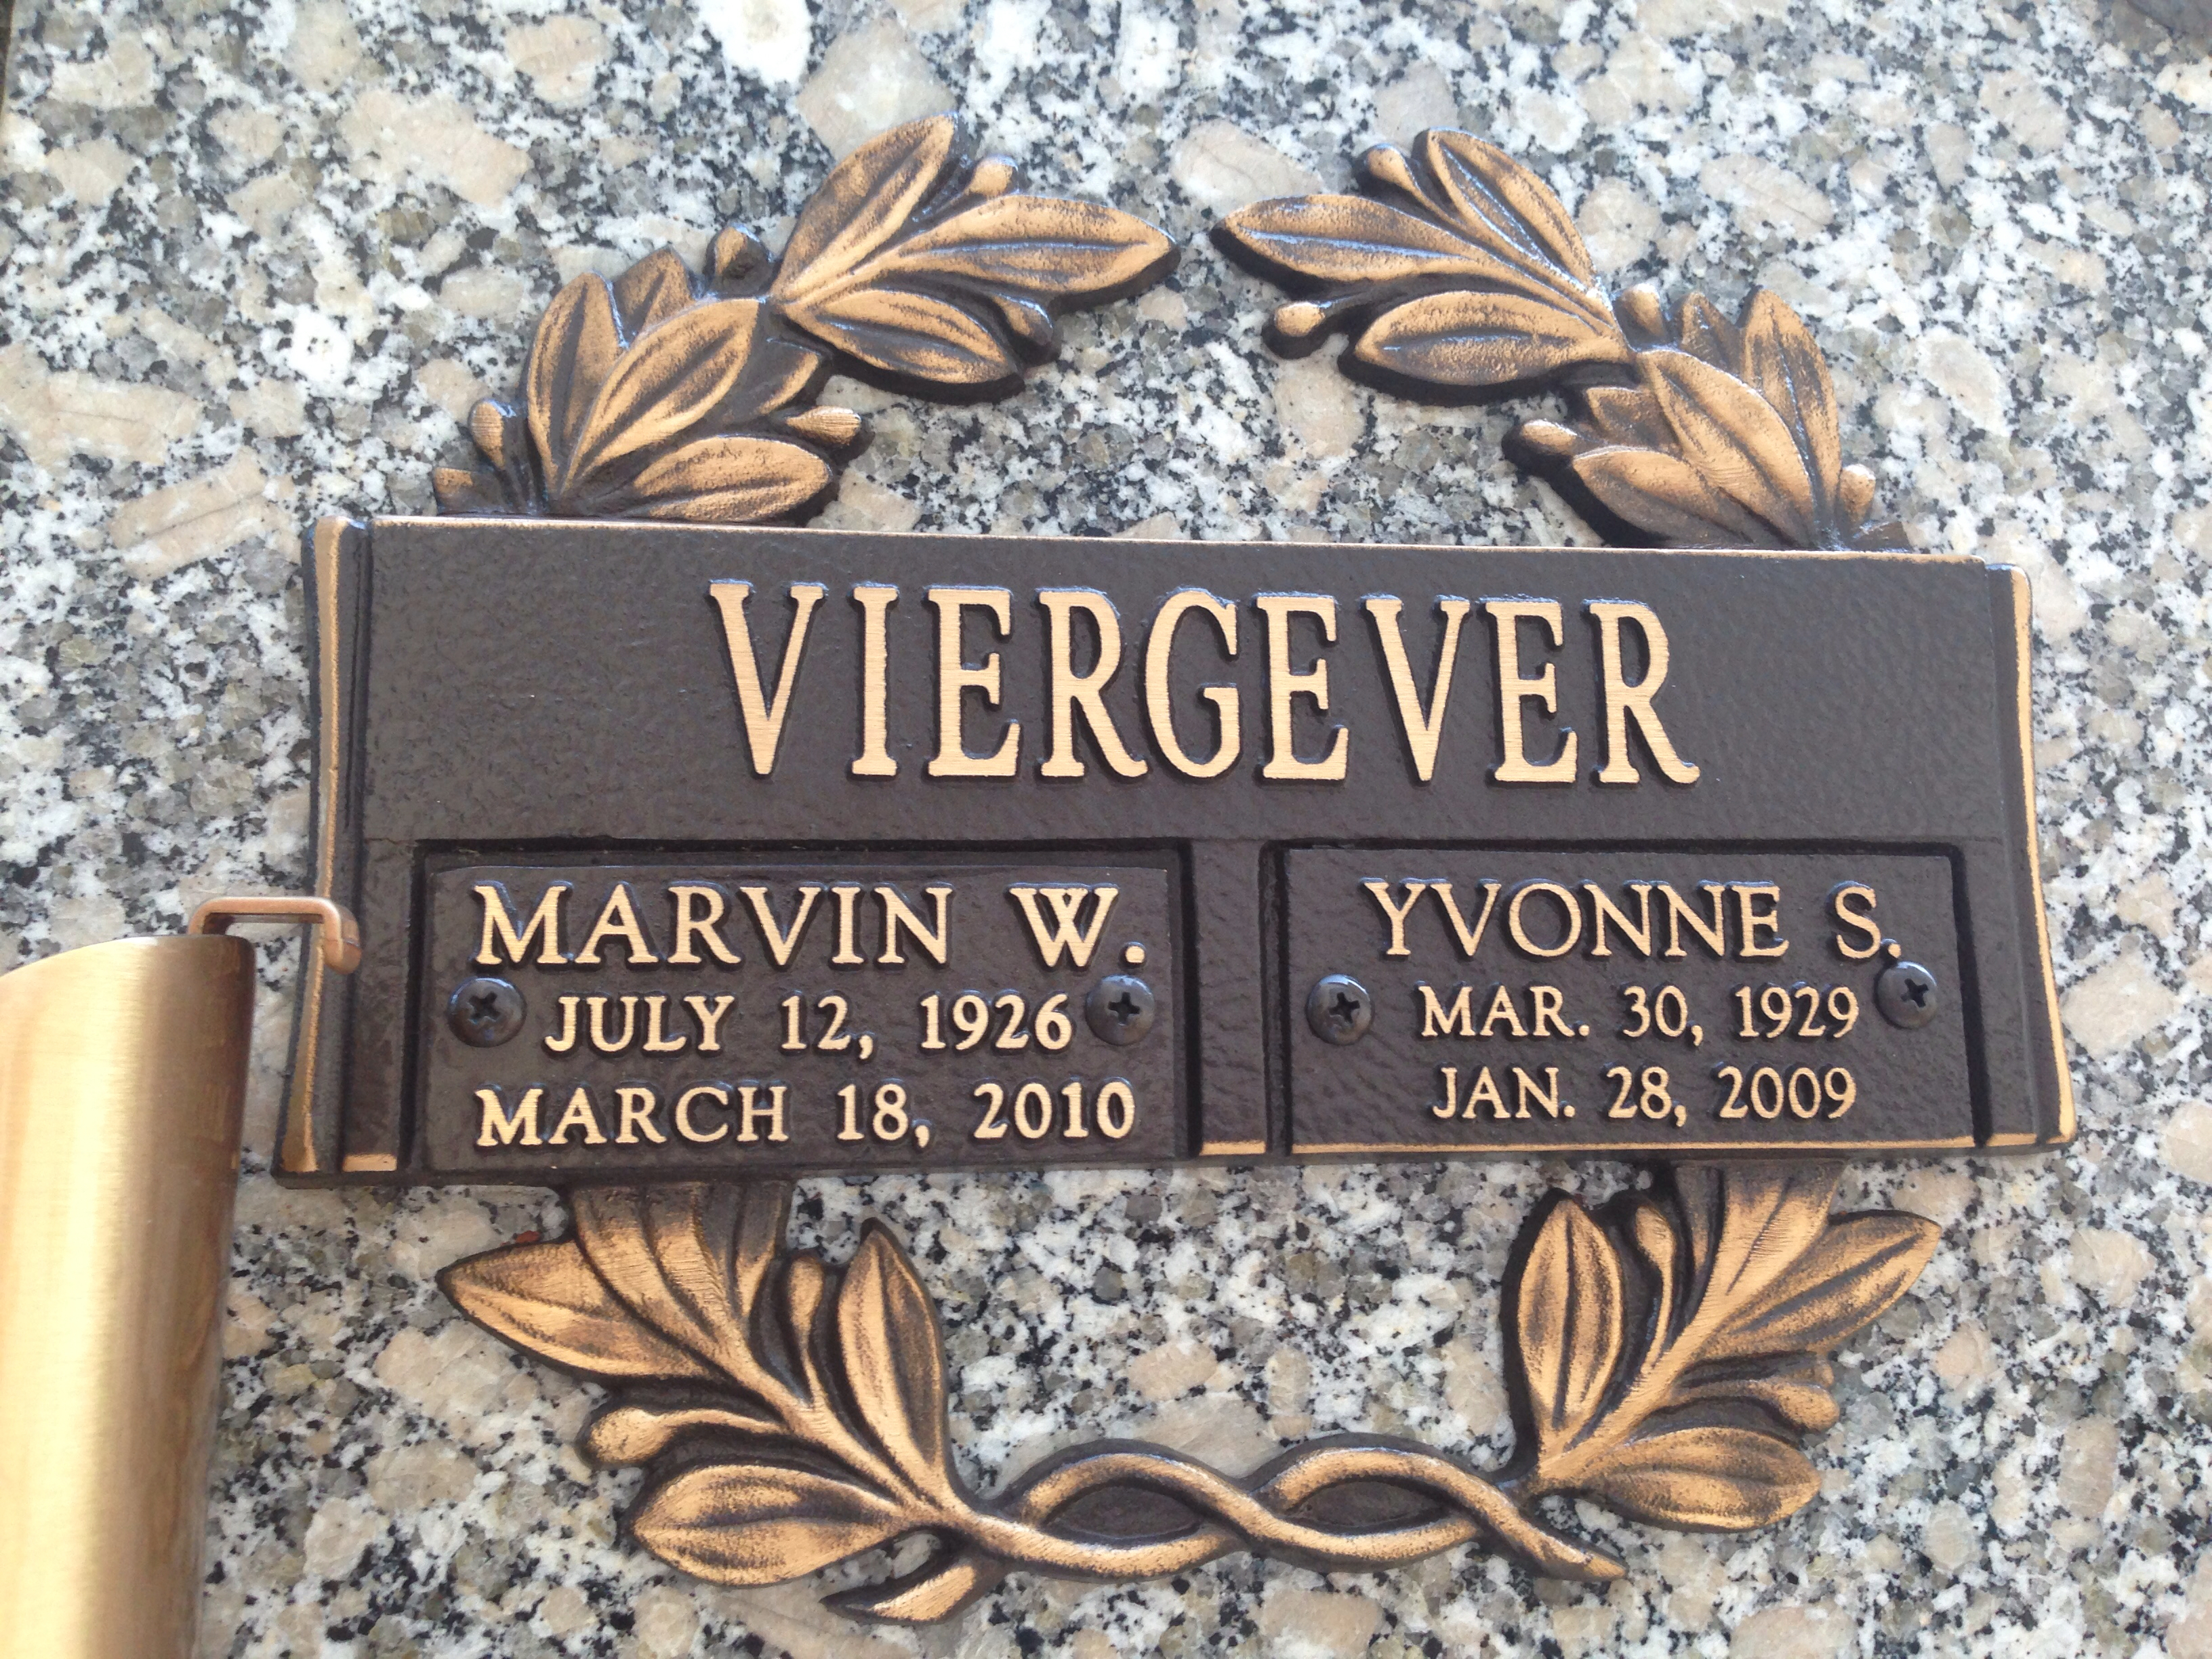 Marvin Wayne Viergever 1926-2010 and Yvonne Shirley -Bonnie- Reeves 1929-2009